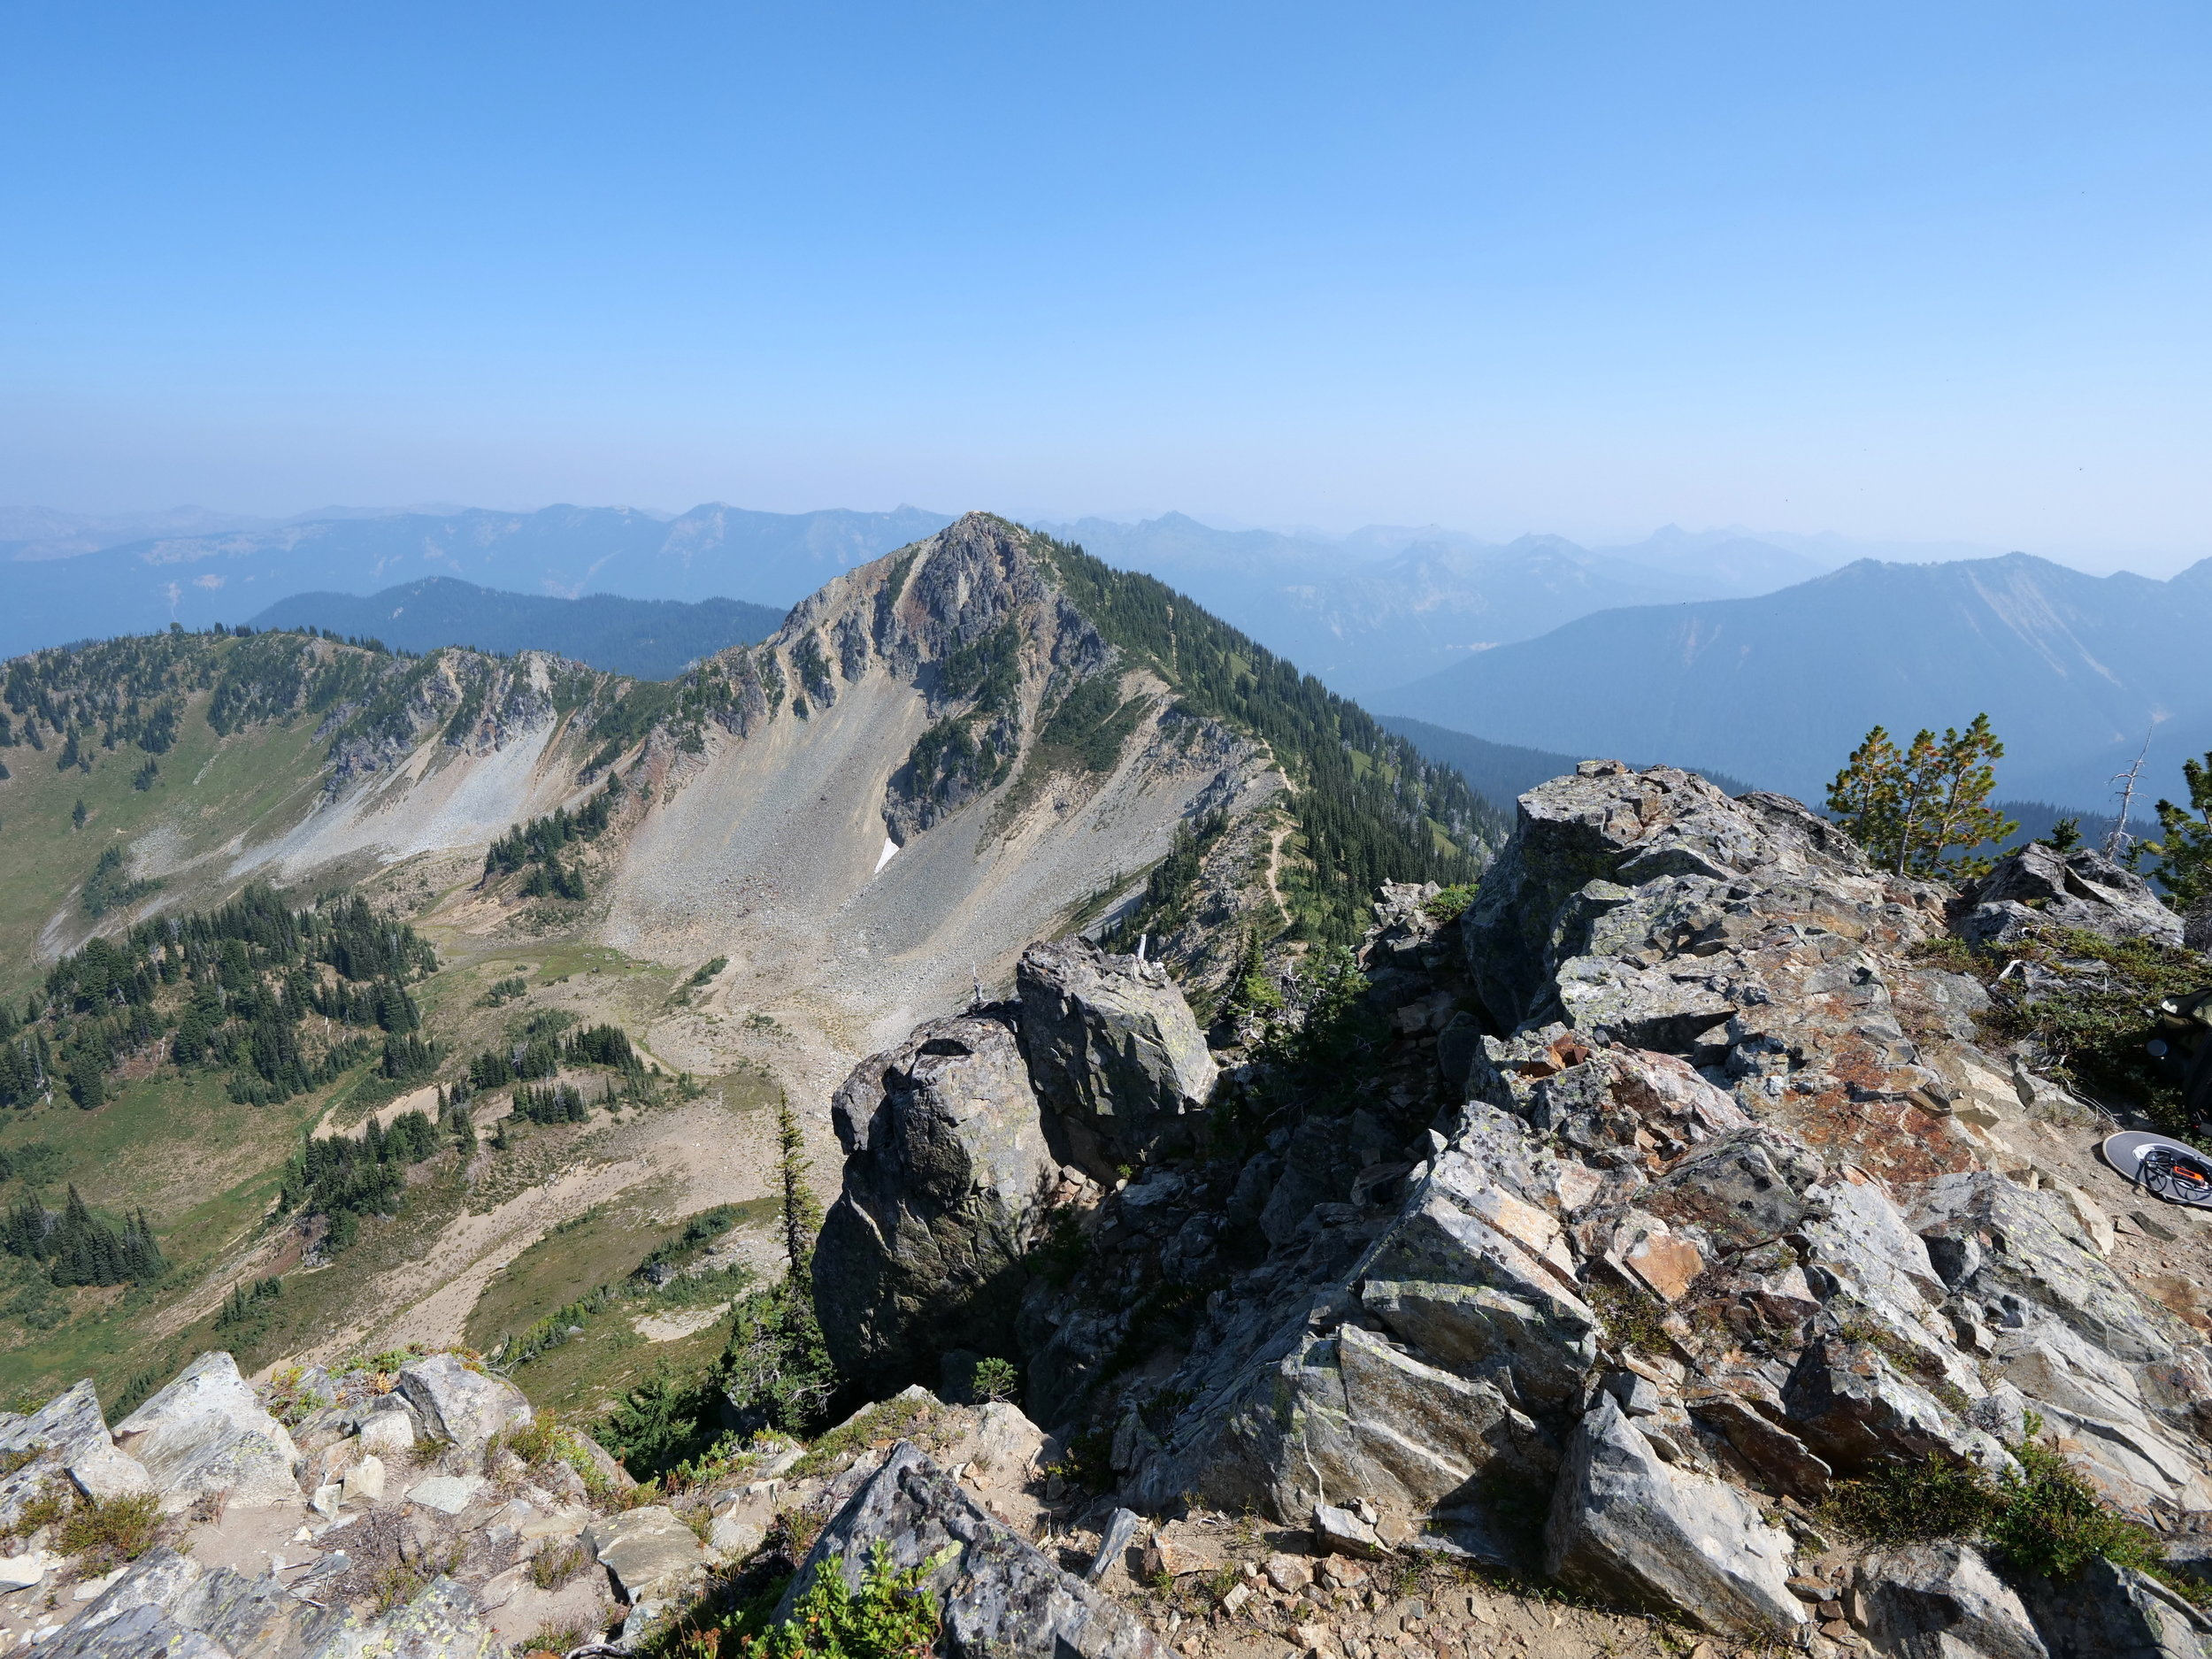 Looking back at Dege (7006') from Antler summit